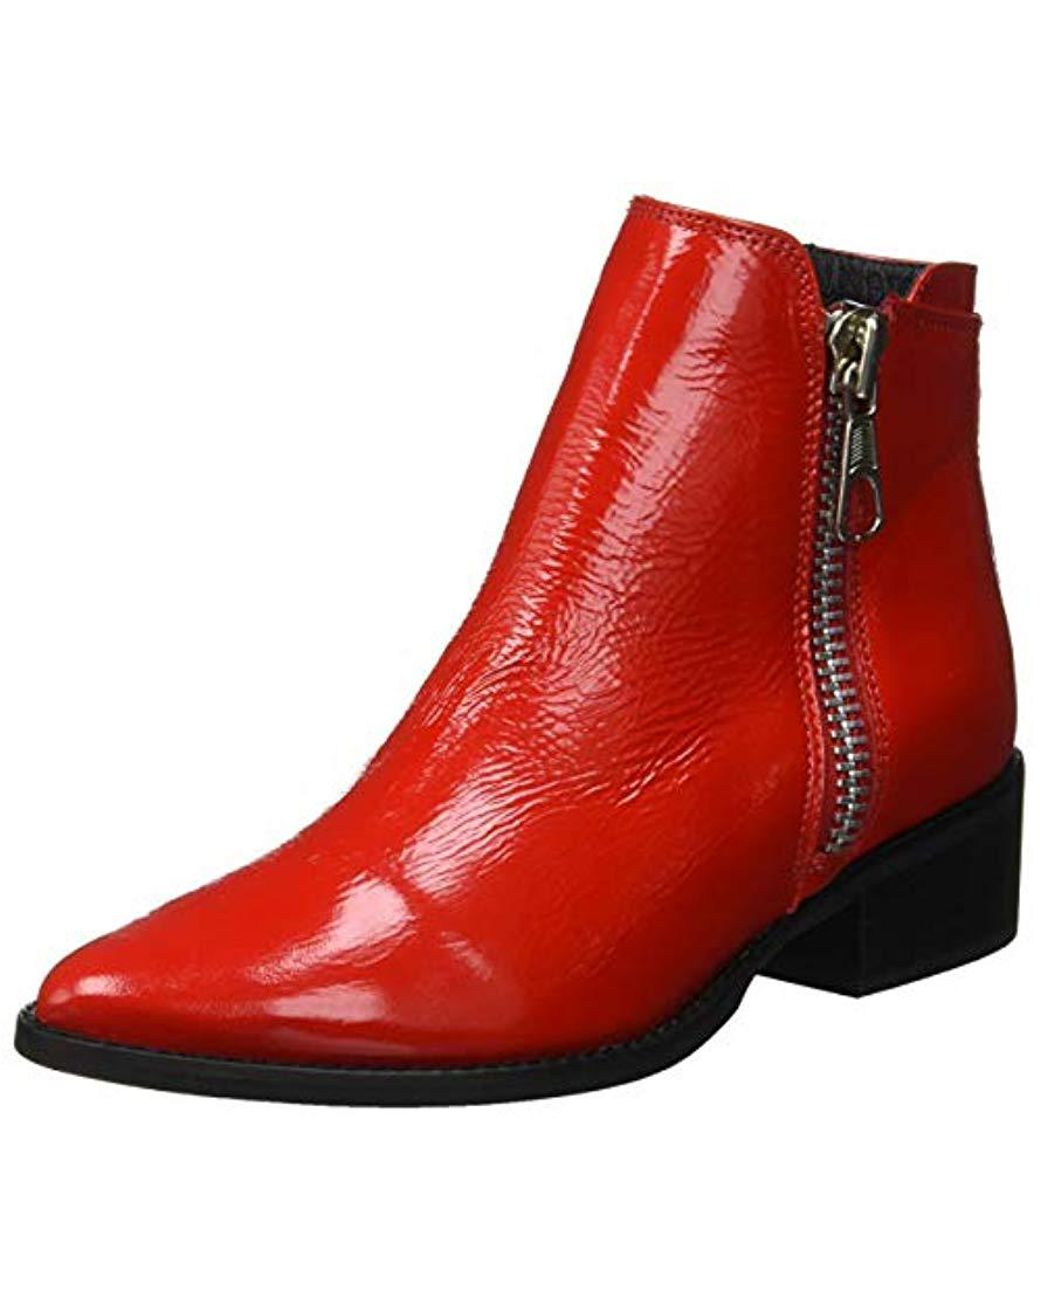 520373d678d Steve Madden  s Annie Ankle Boots in Red - Lyst